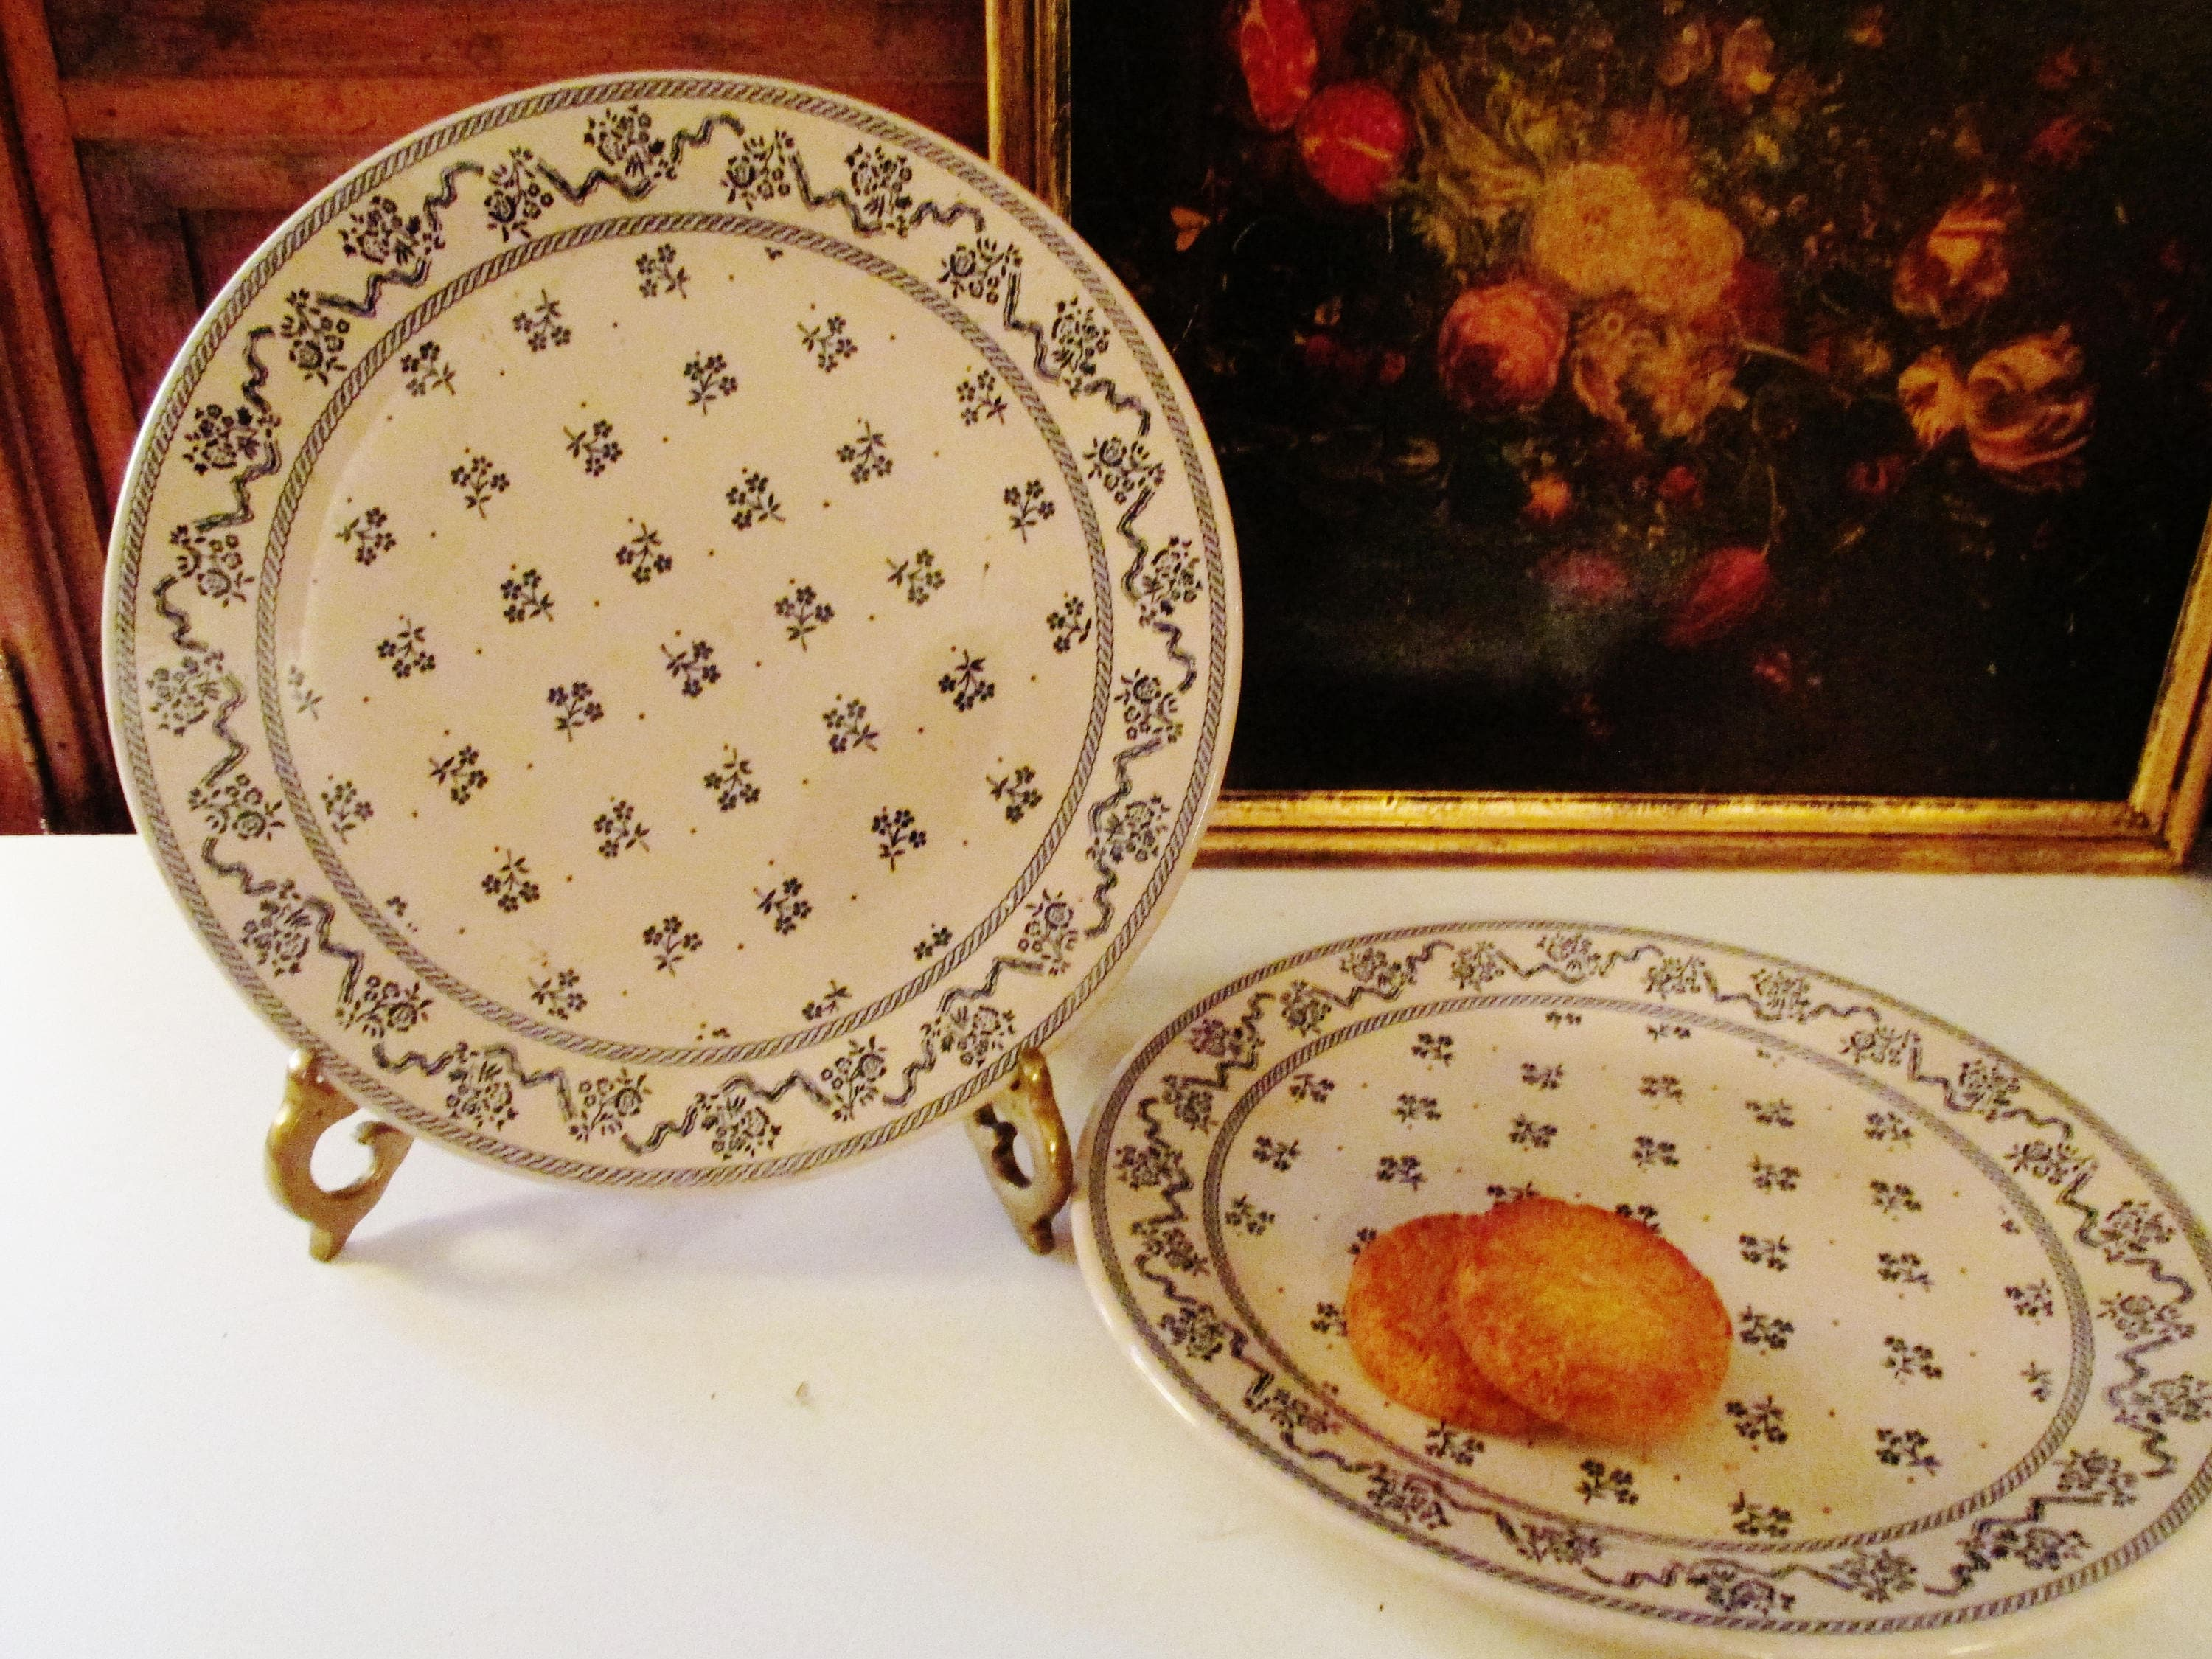 Two Laura Ashley Petite Fleur Plates by Johnson Brothers